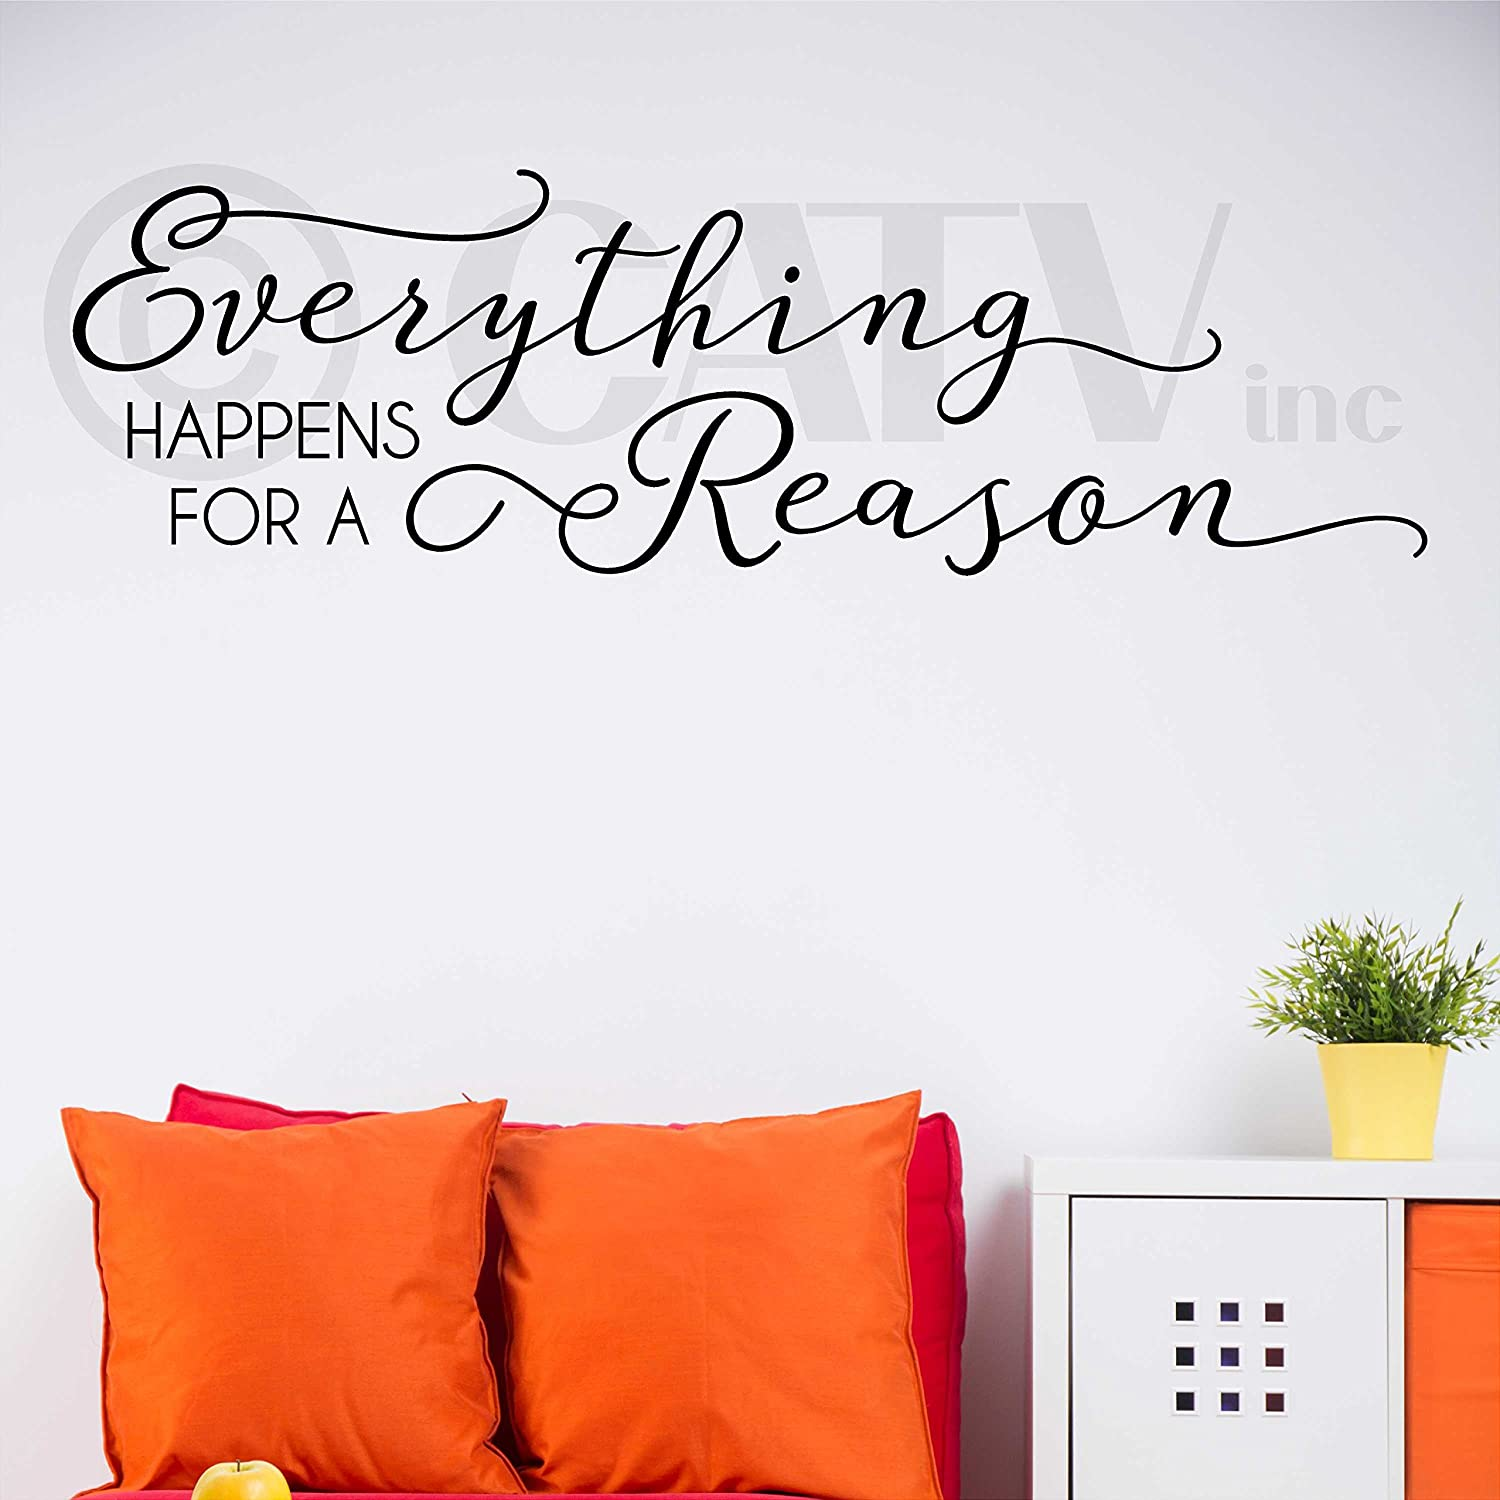 Wall Art At Home Goods : Breathtaking wall art at home goods pictures decors dievoon